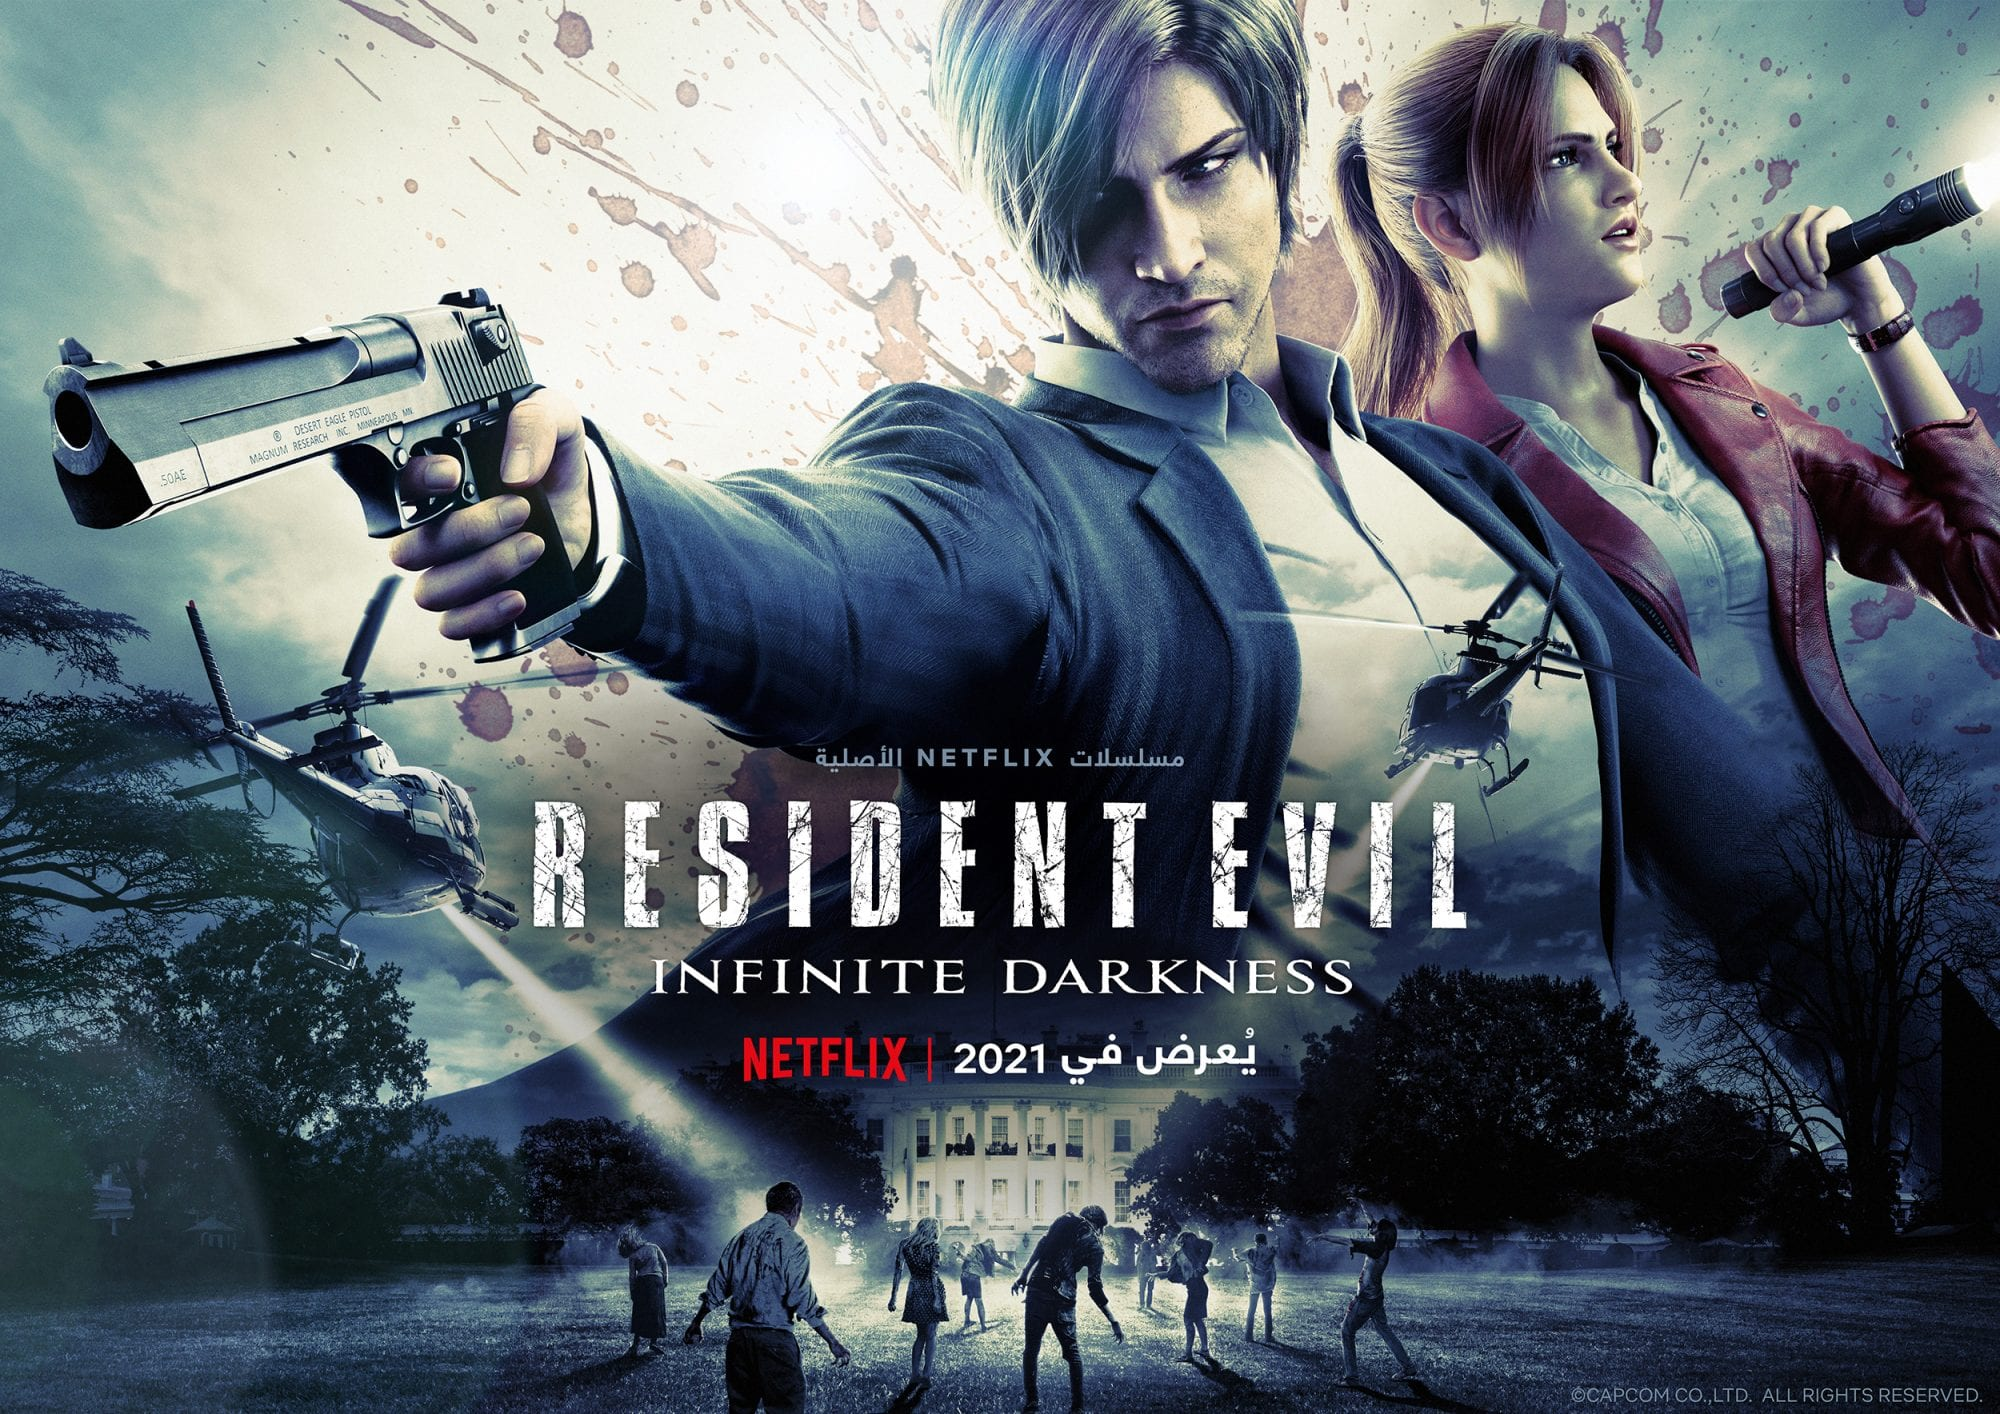 Netflix's RESIDENT EVIL: Infinite Darkness release date and first look!